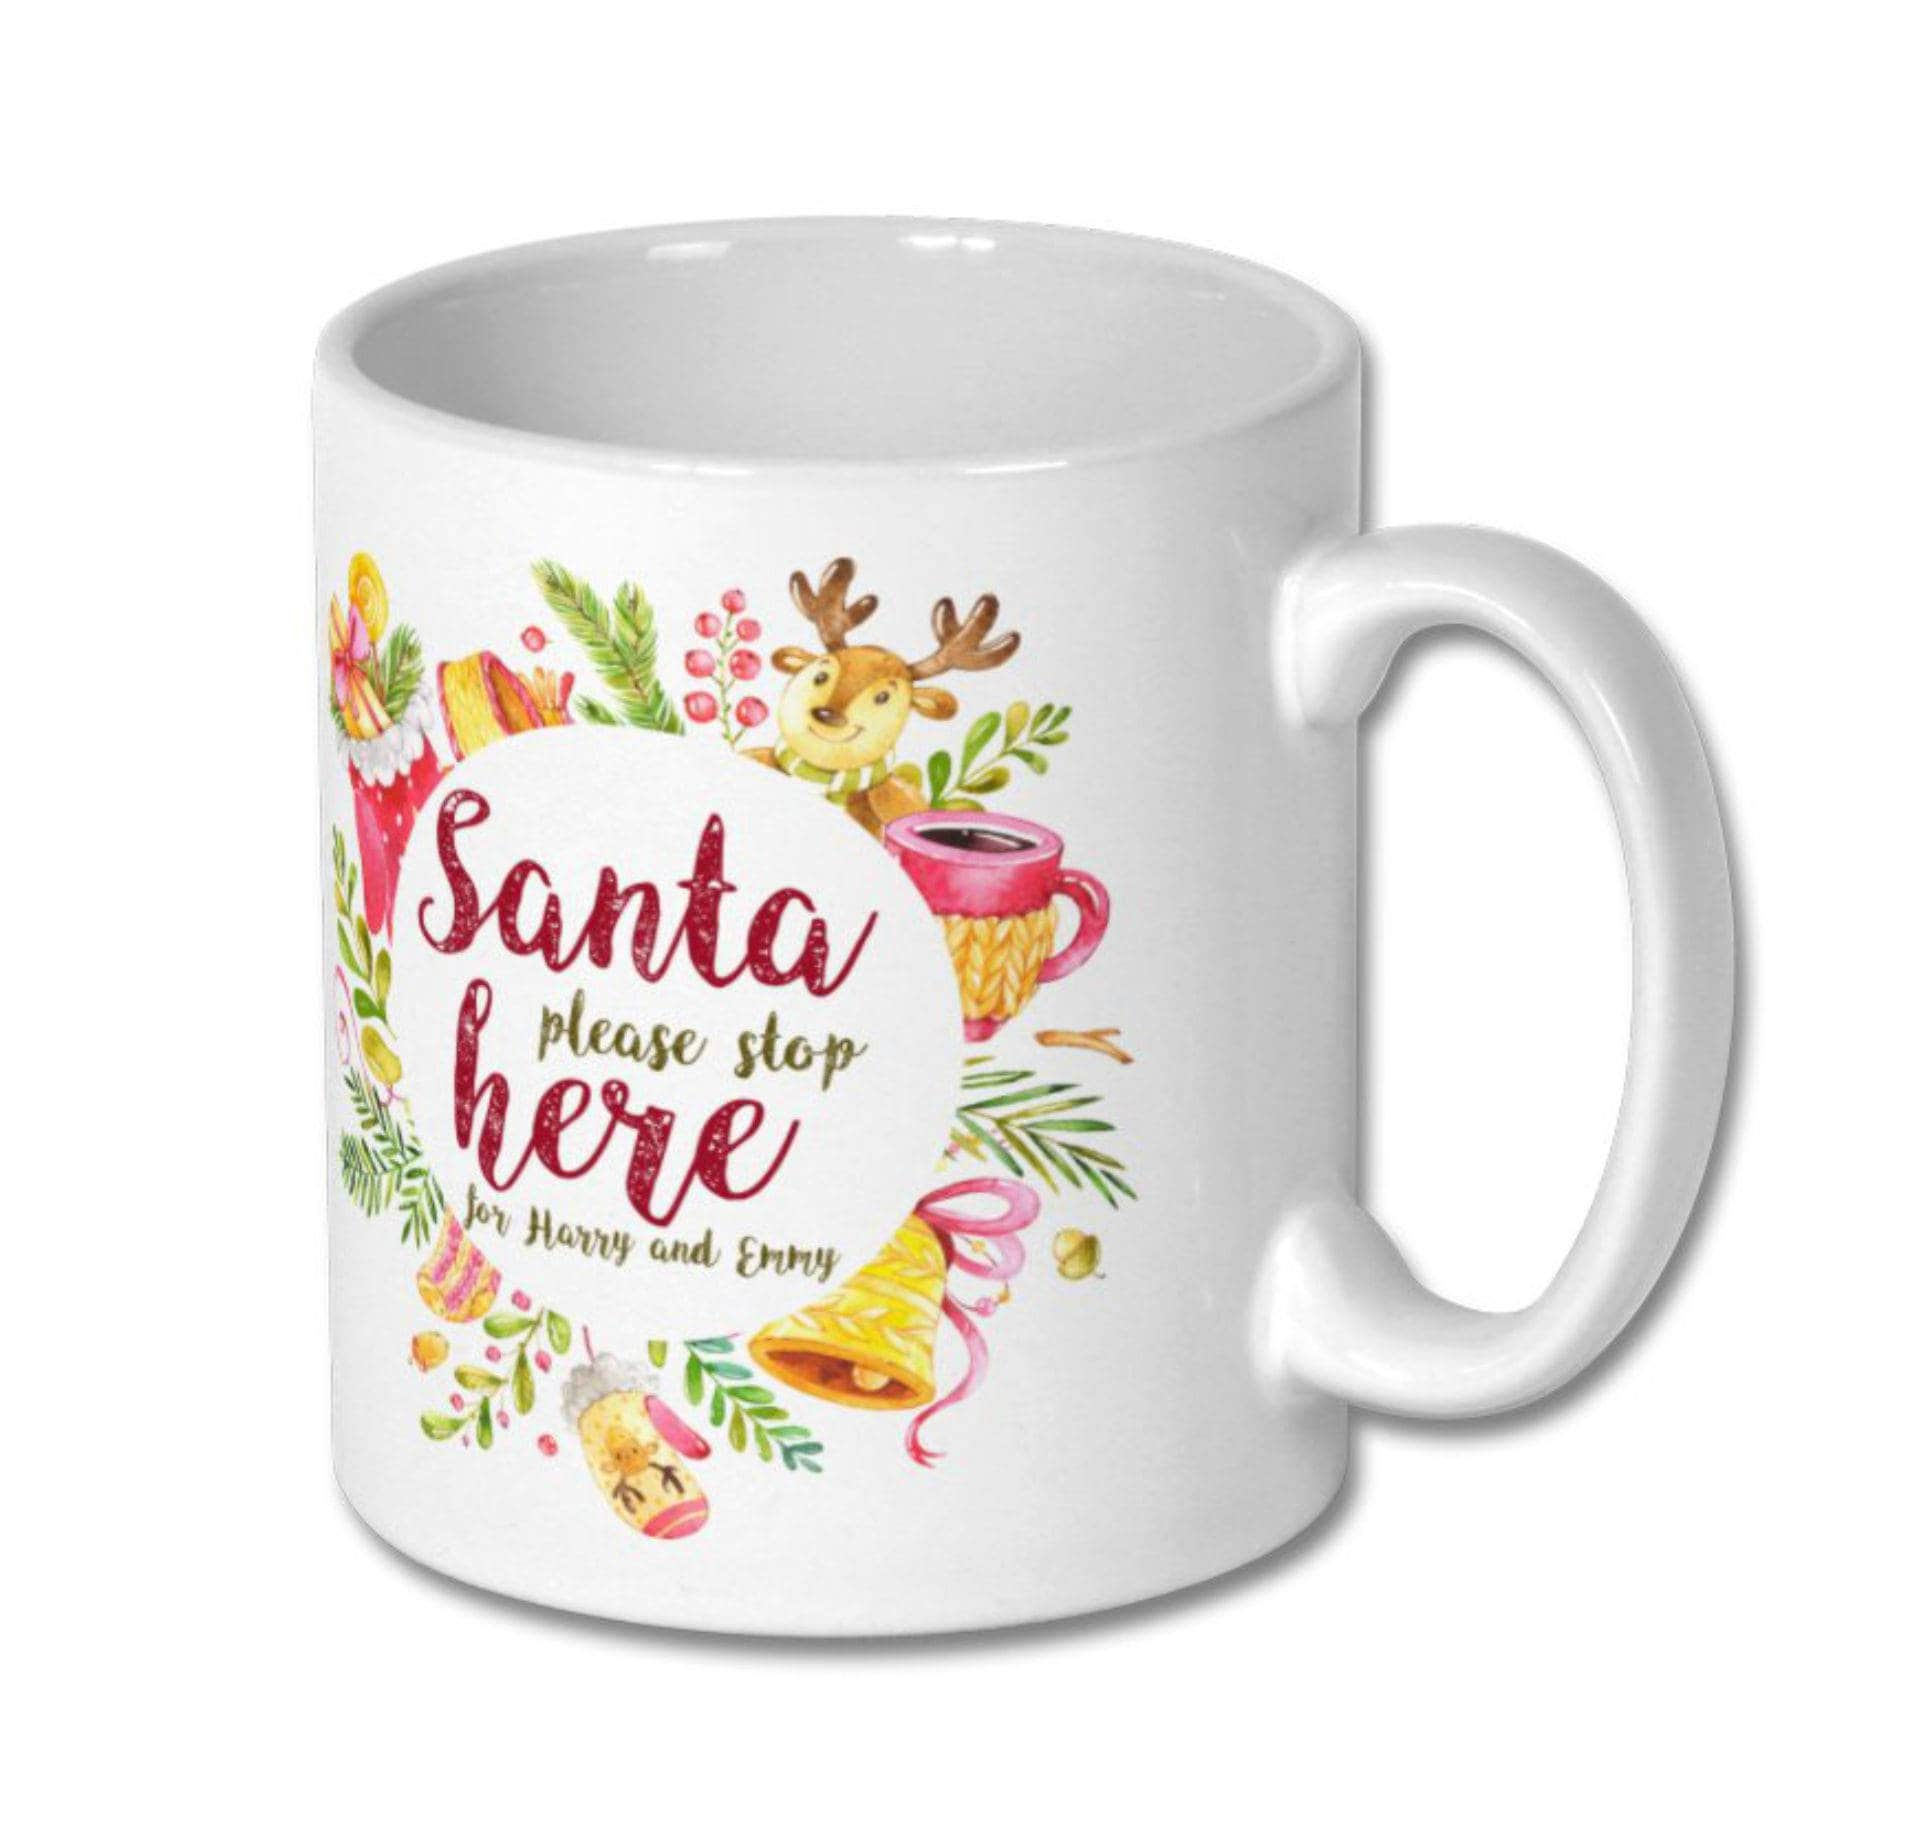 personalized christmas mug gift mugs personalize with any. Black Bedroom Furniture Sets. Home Design Ideas